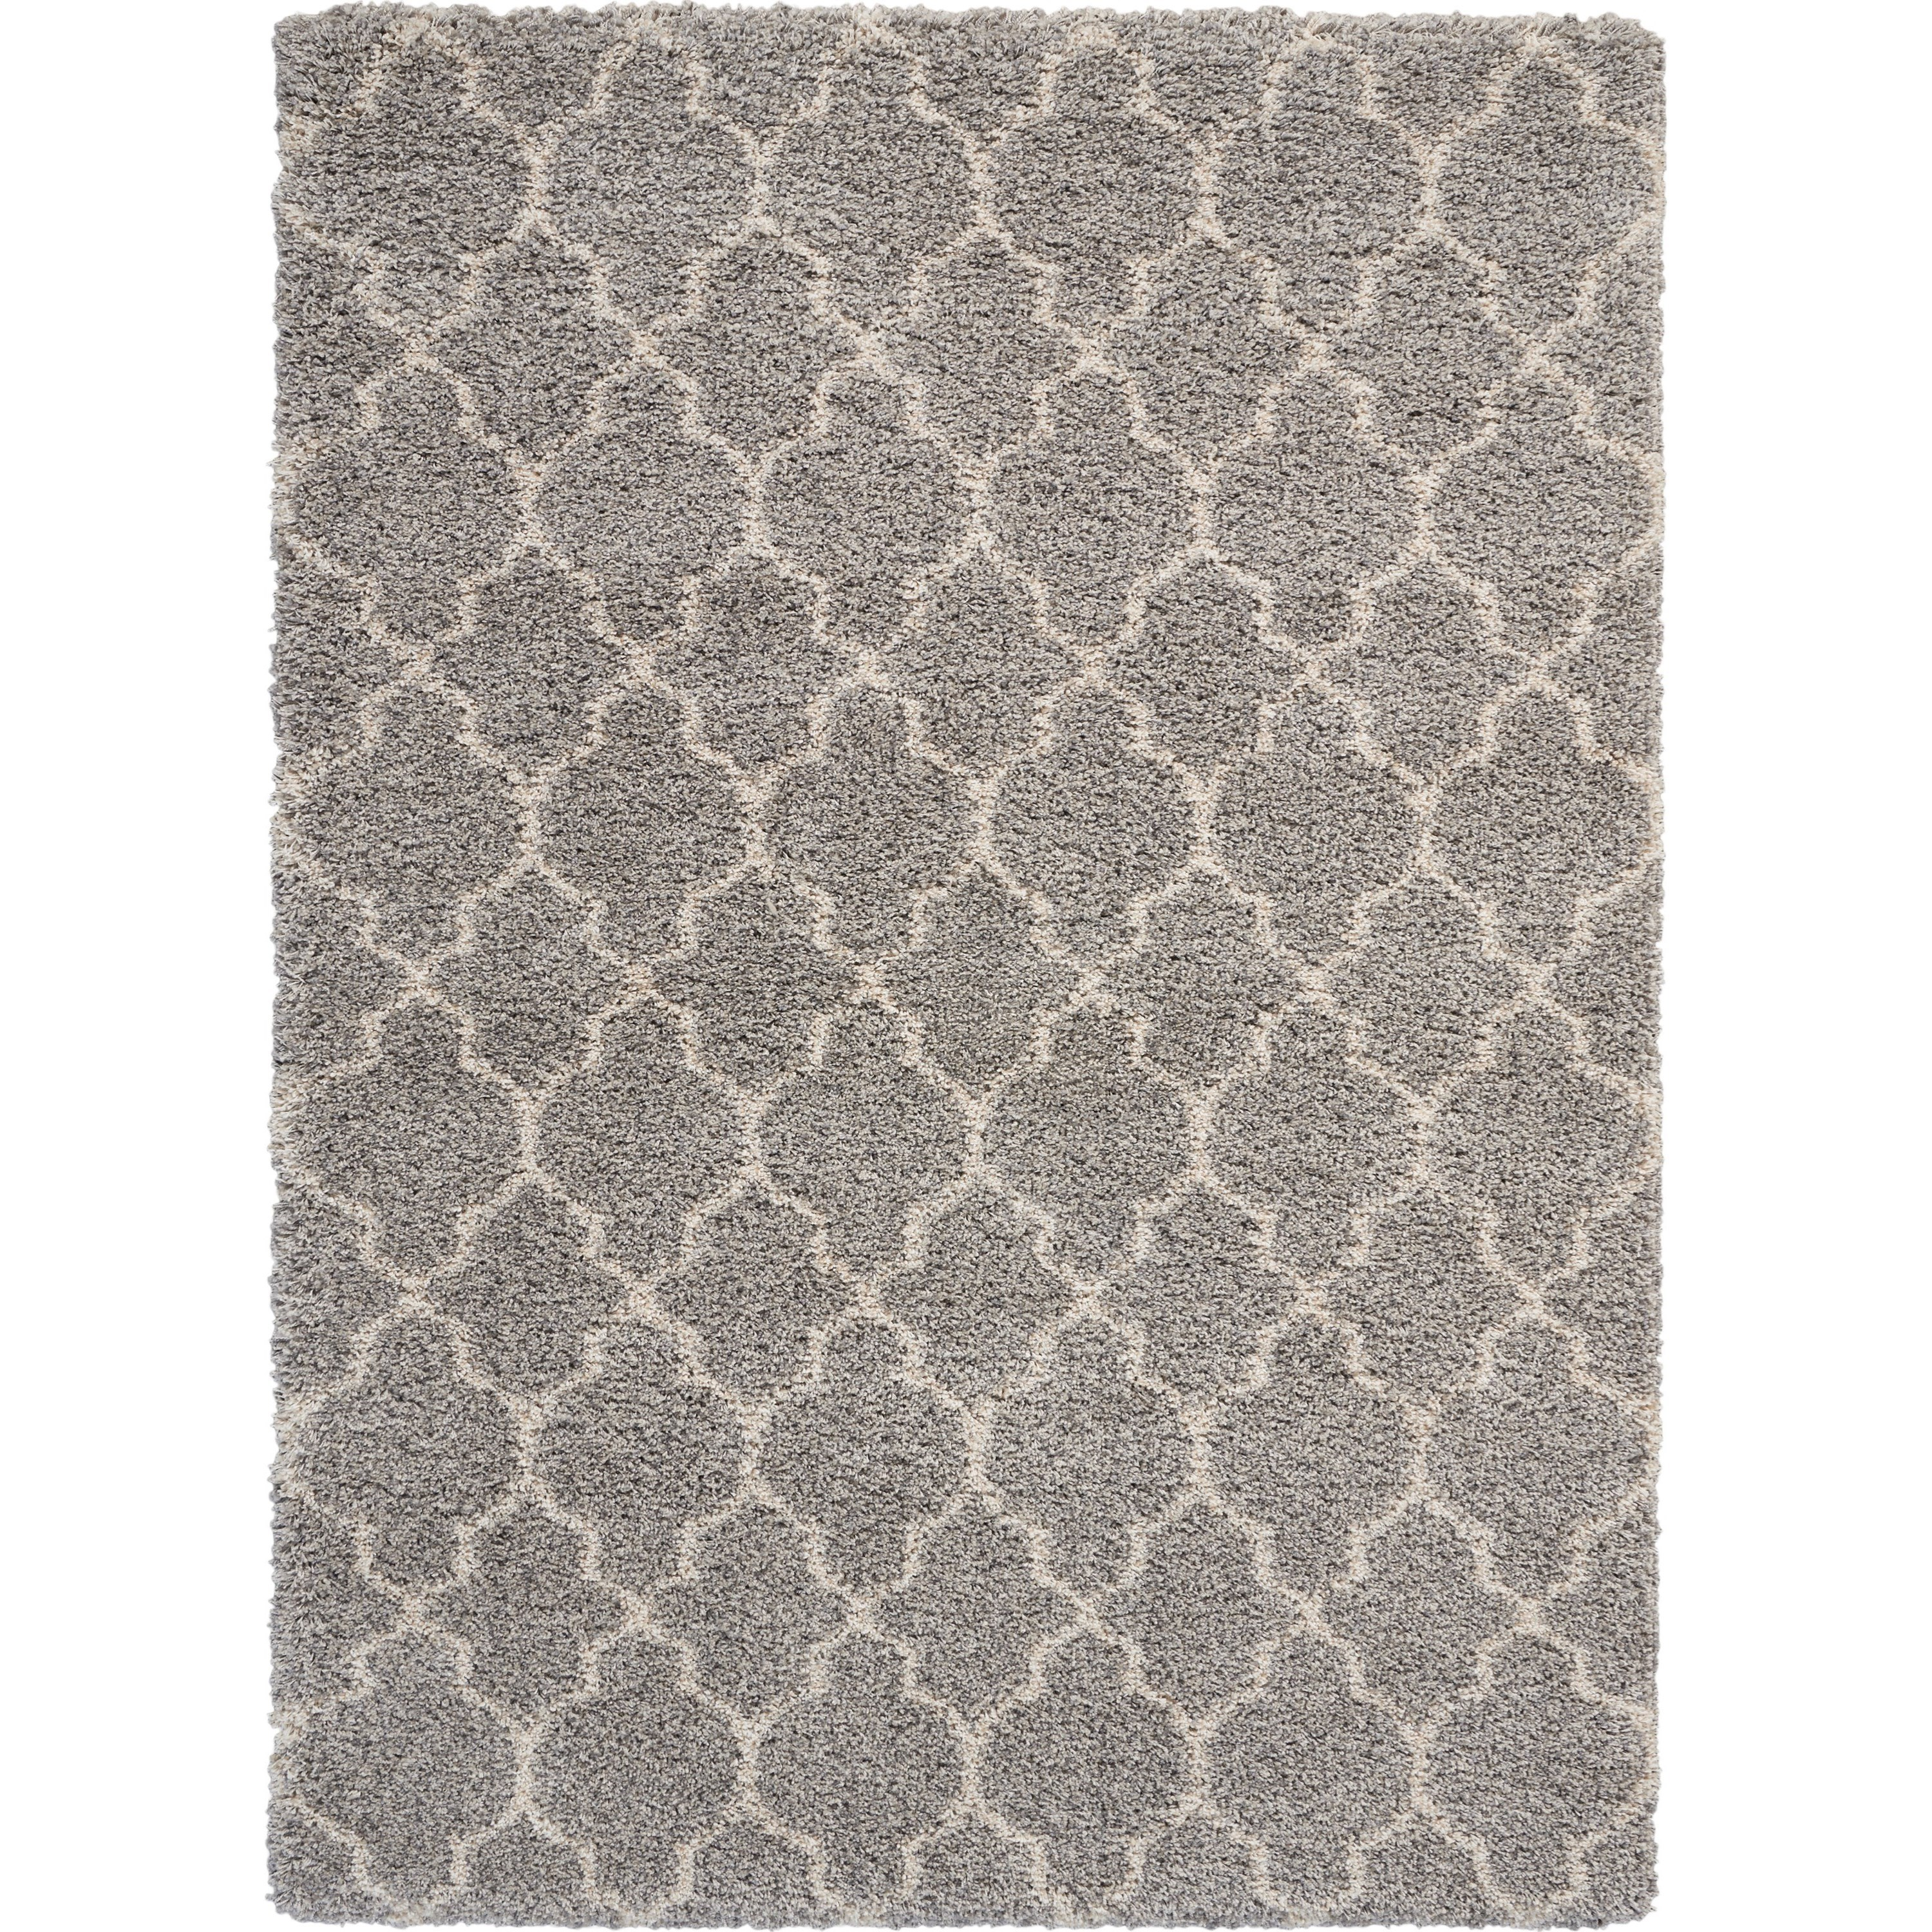 Amore Amore AMOR2 Beige 4'x6' Area Rug by Nourison at Home Collections Furniture